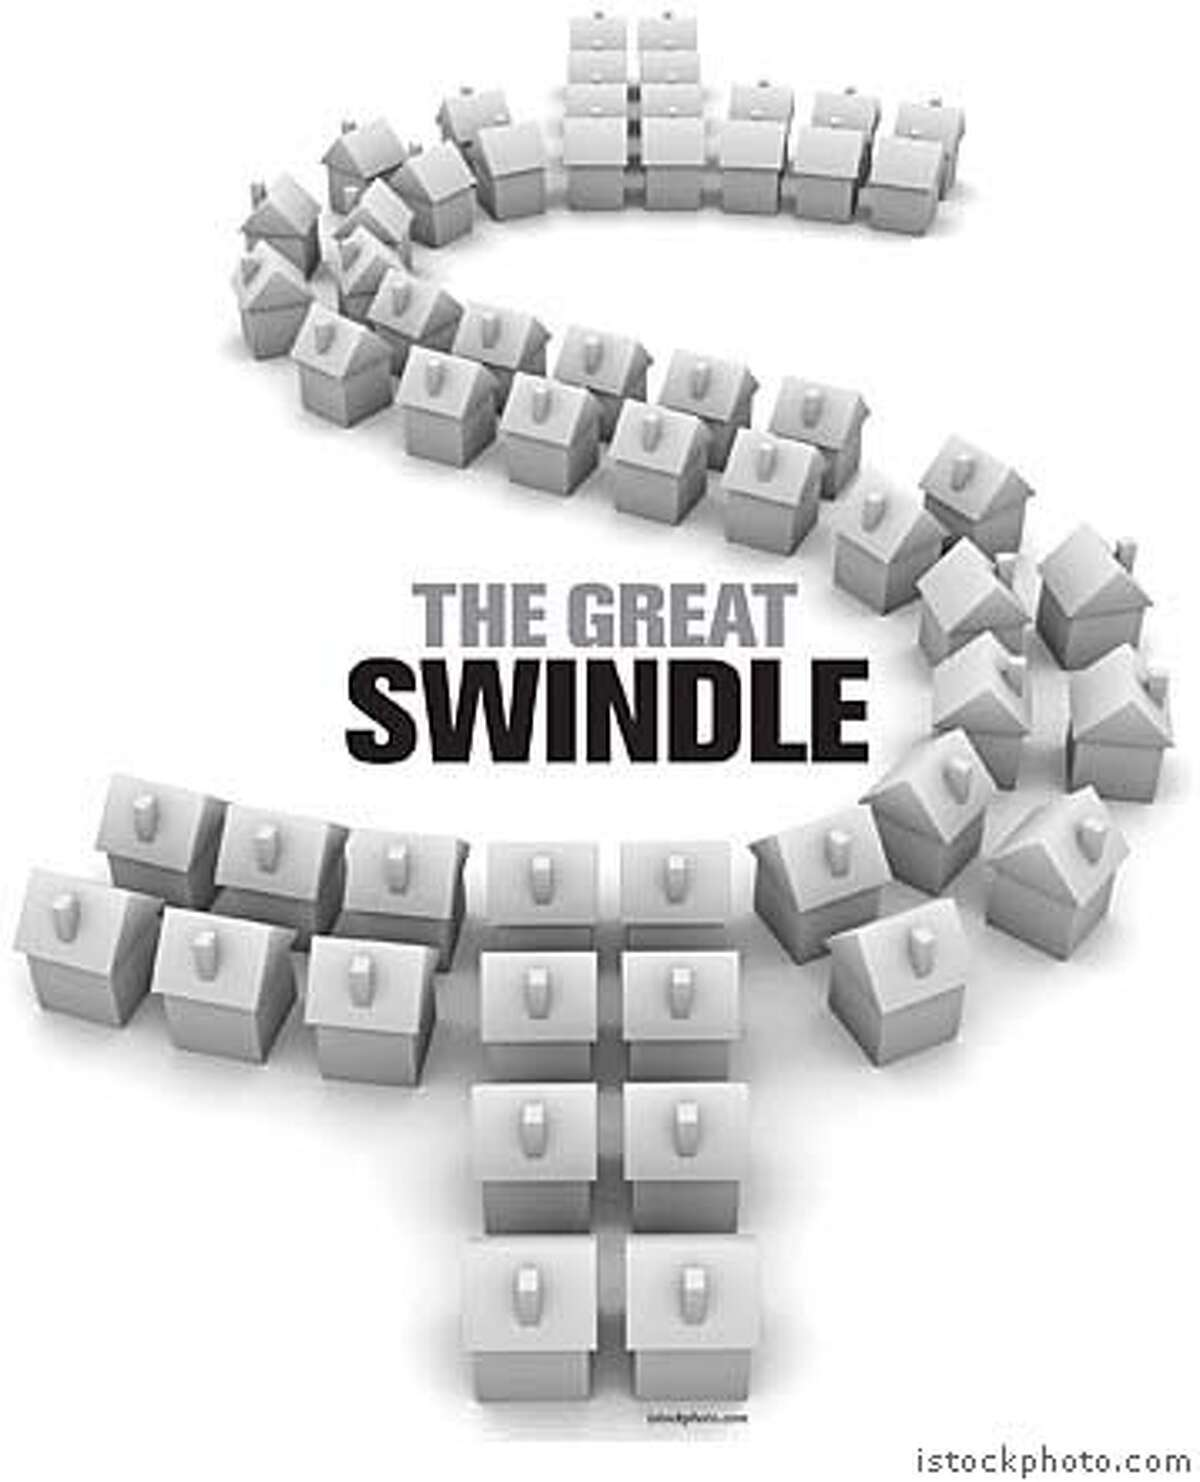 The Great Swindle: How the Housing Rescue Bill is Helping Banks, Not Taxpayers